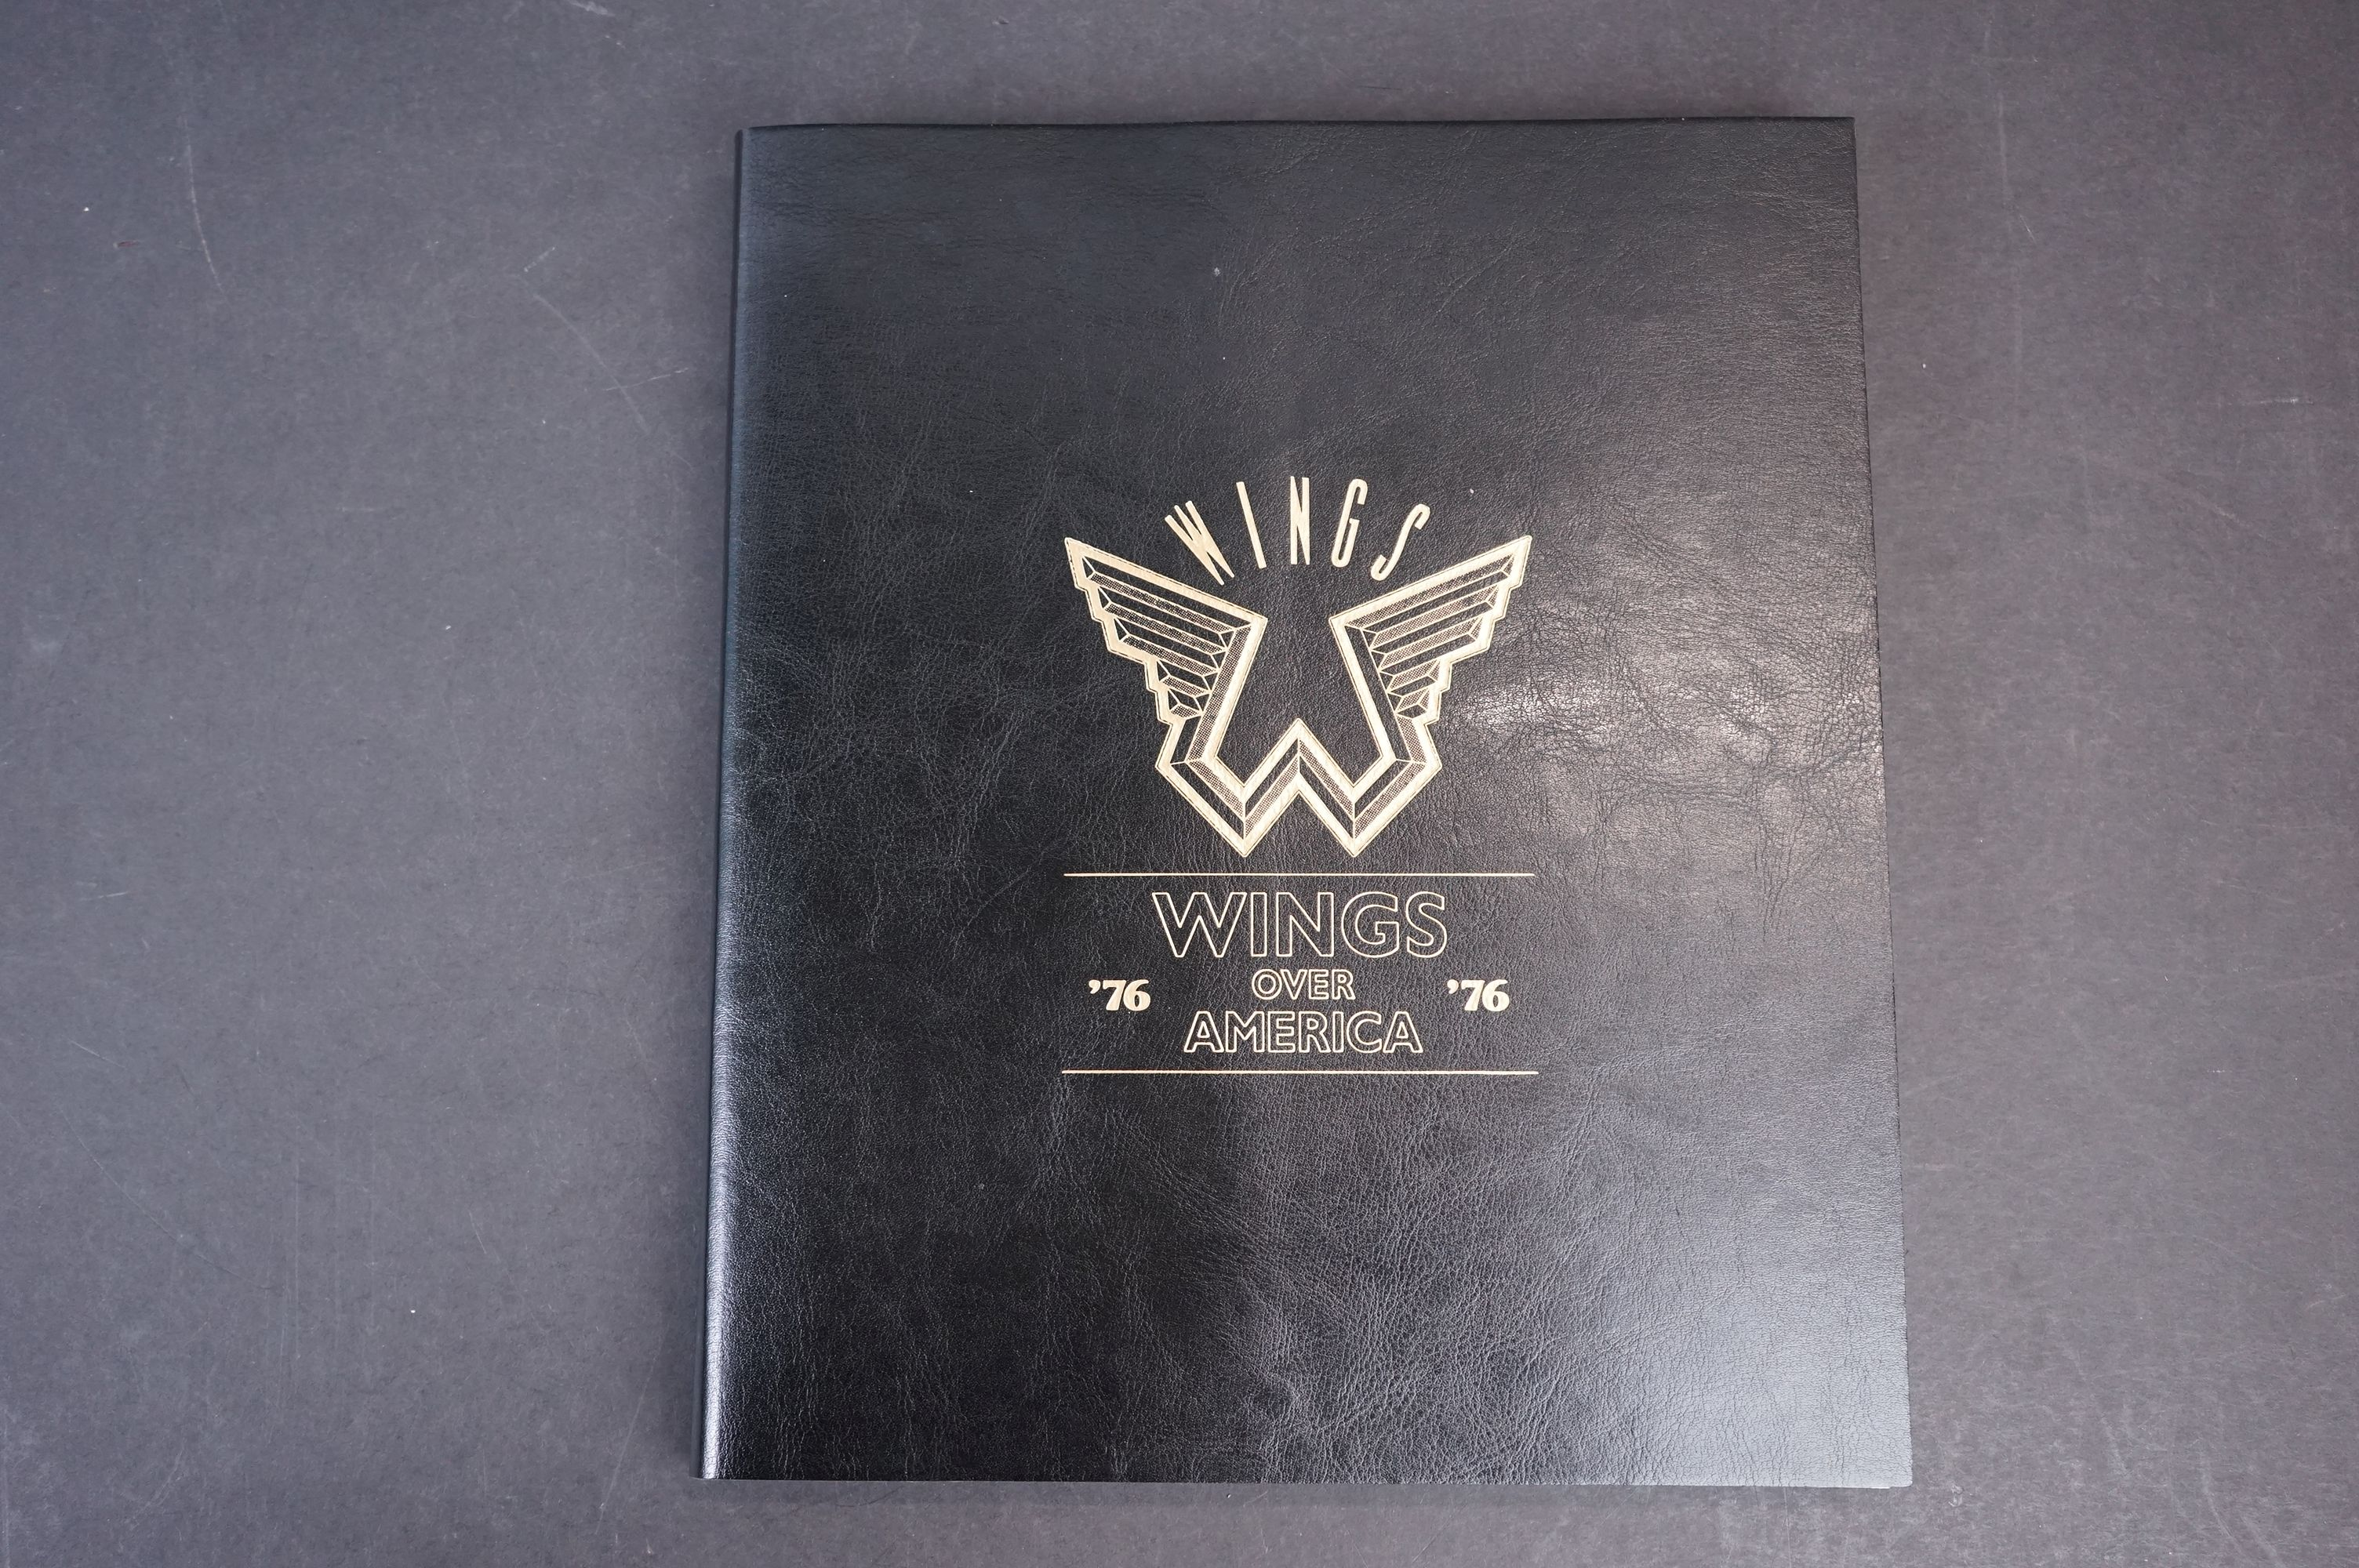 Box Set - Paul McCartney & Wings - Wings Over America numbered box set (03555) deluxe box set, ex - Image 2 of 18